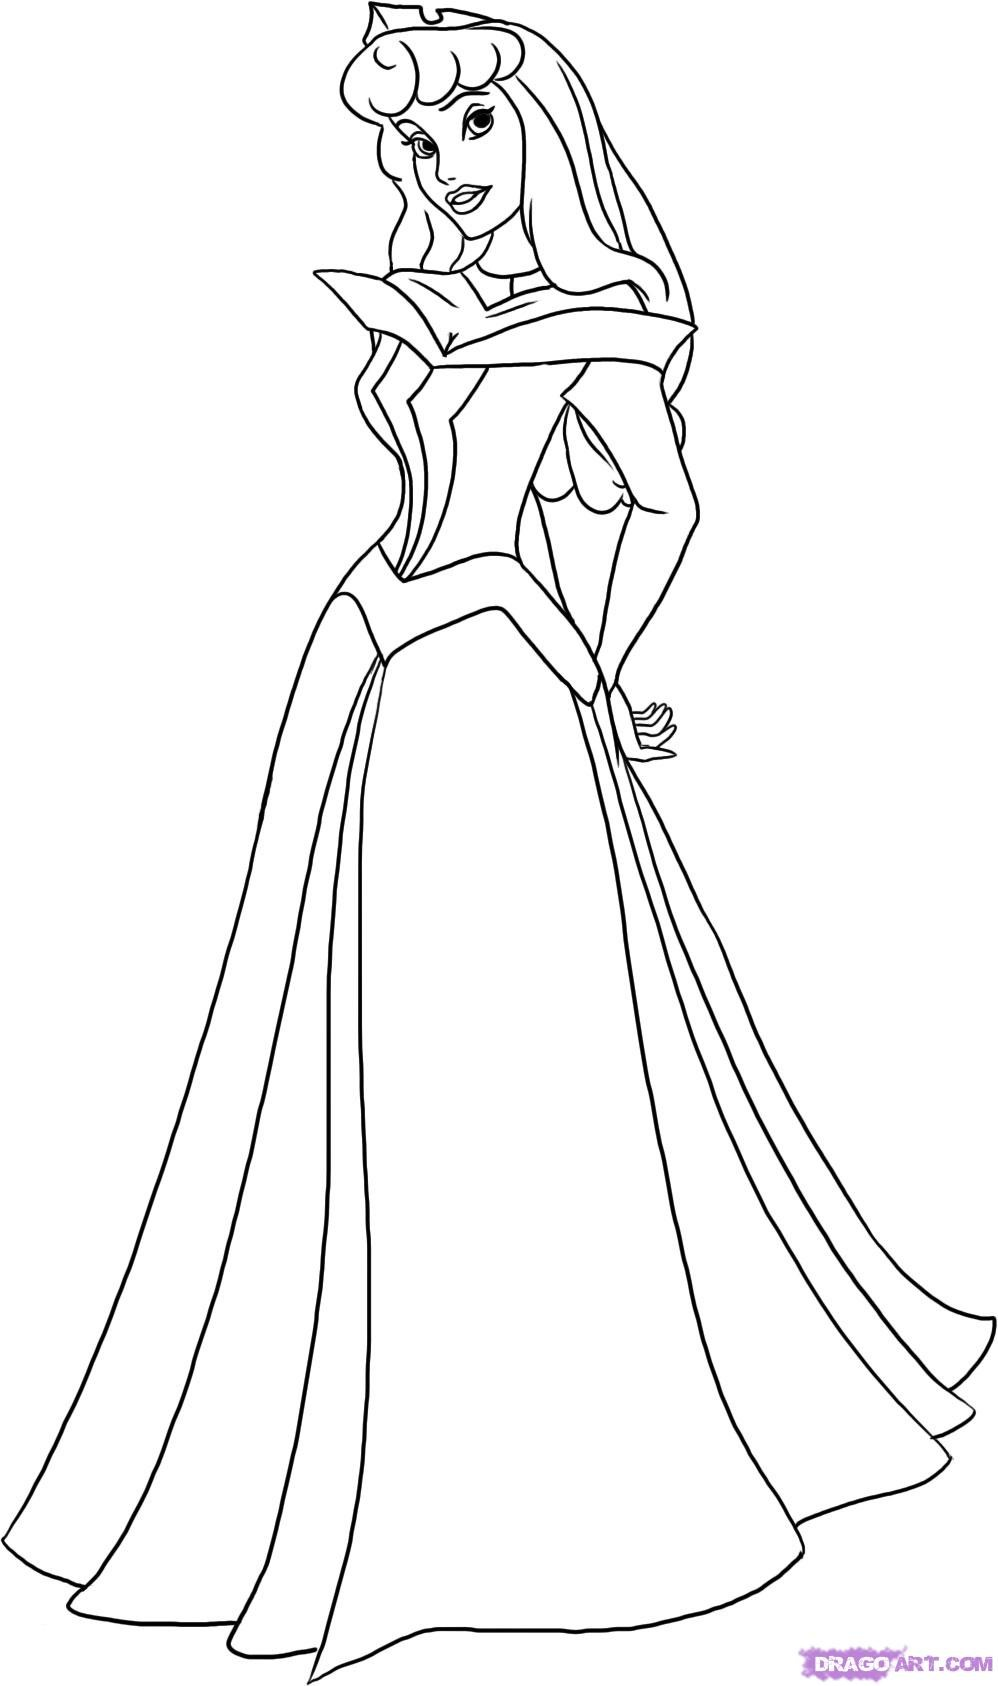 how to draw a barbie princess princess barbie drawing at getdrawings free download princess a how to barbie draw